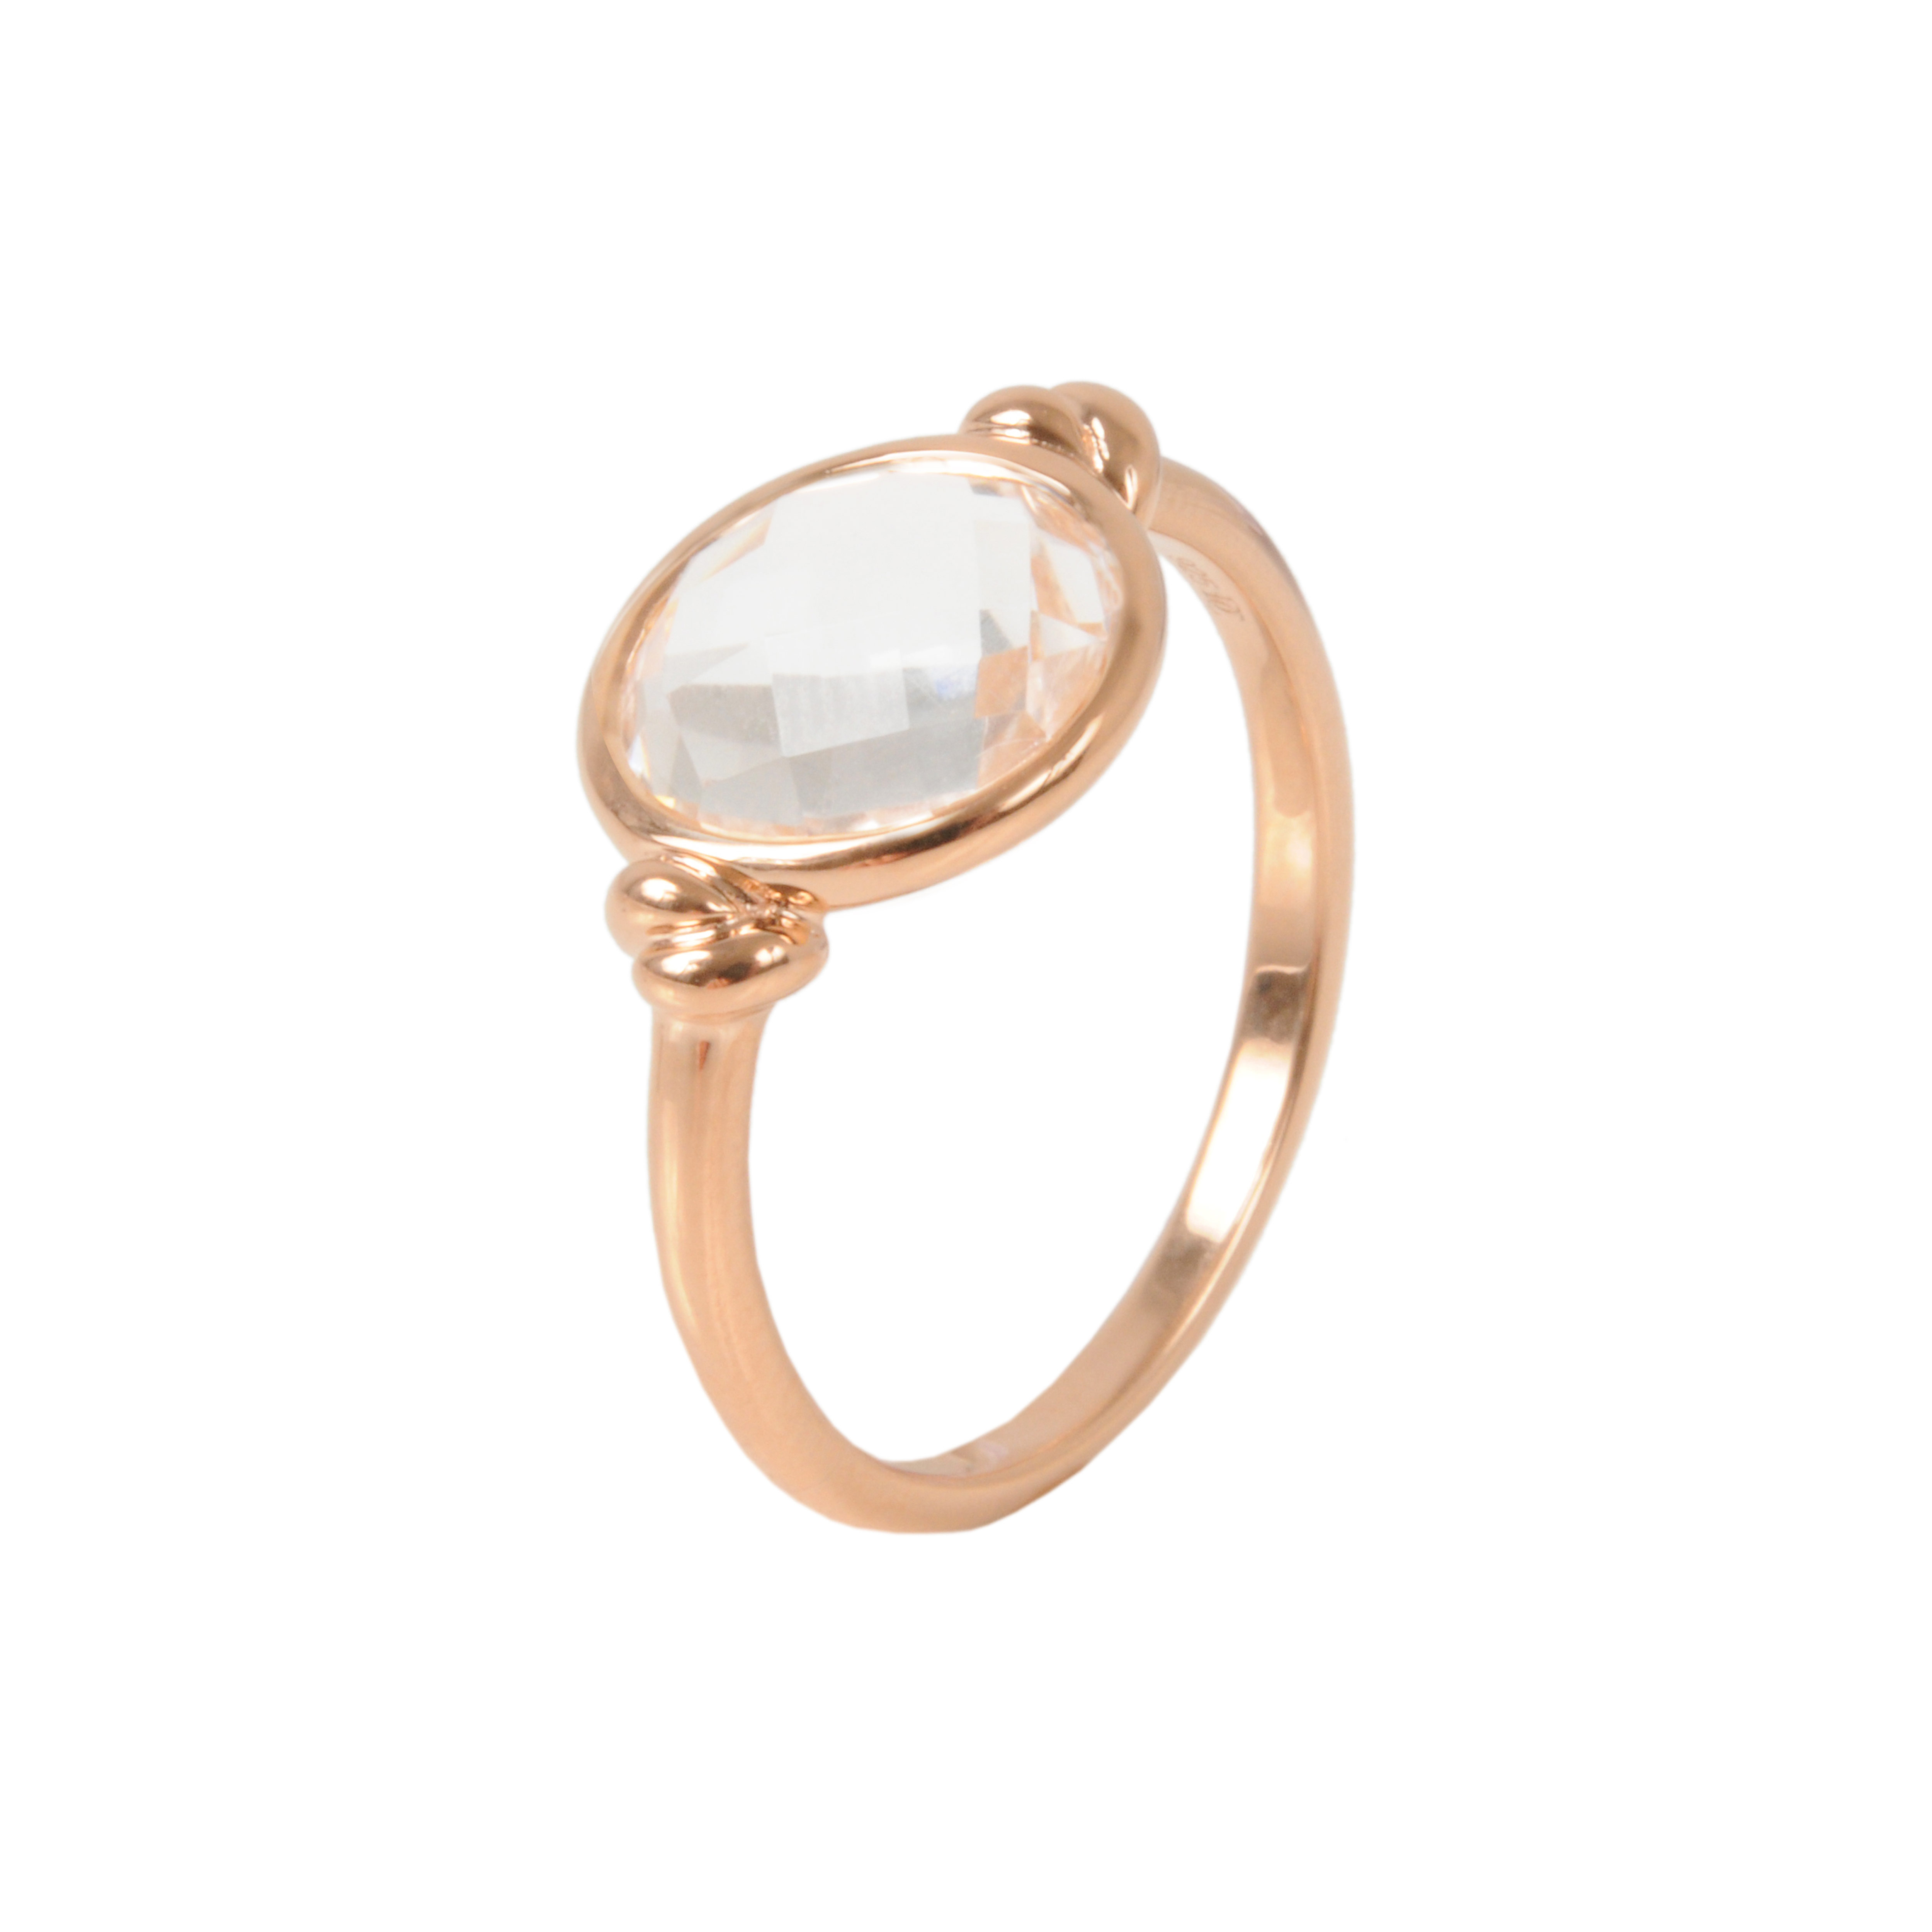 Davina Combe Rose Gold Knot Ring With Rock Crystal